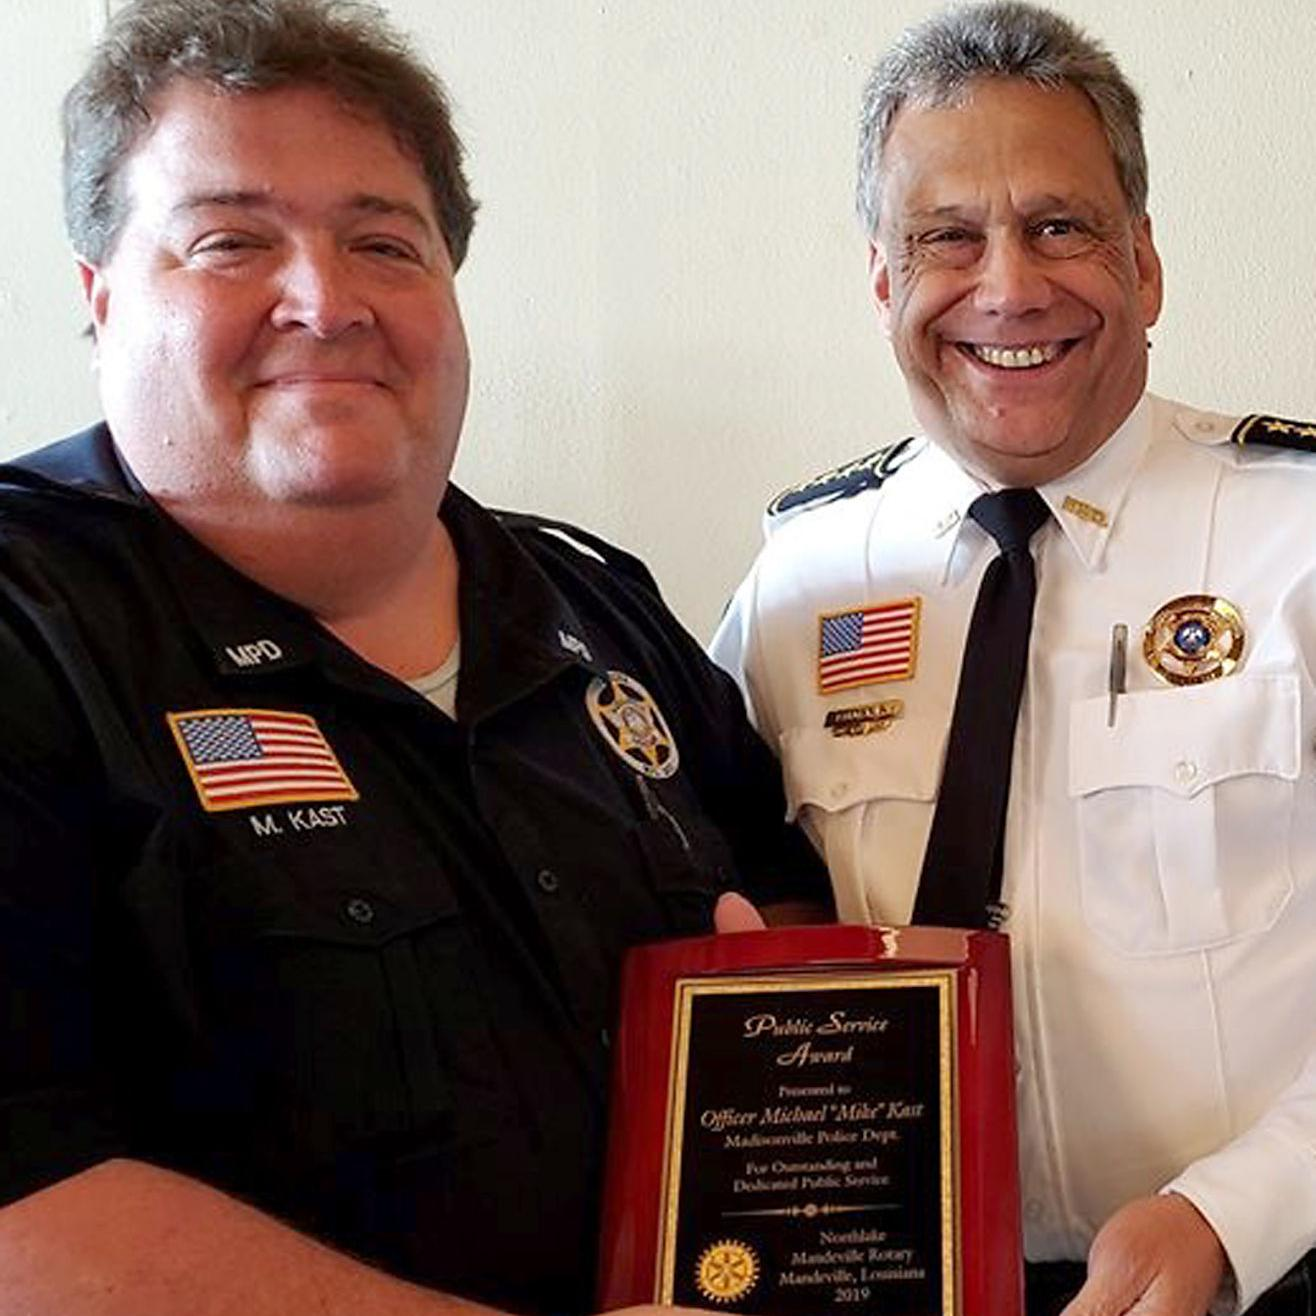 Super First responders honored at Rotary's Public Service Awards FN-08